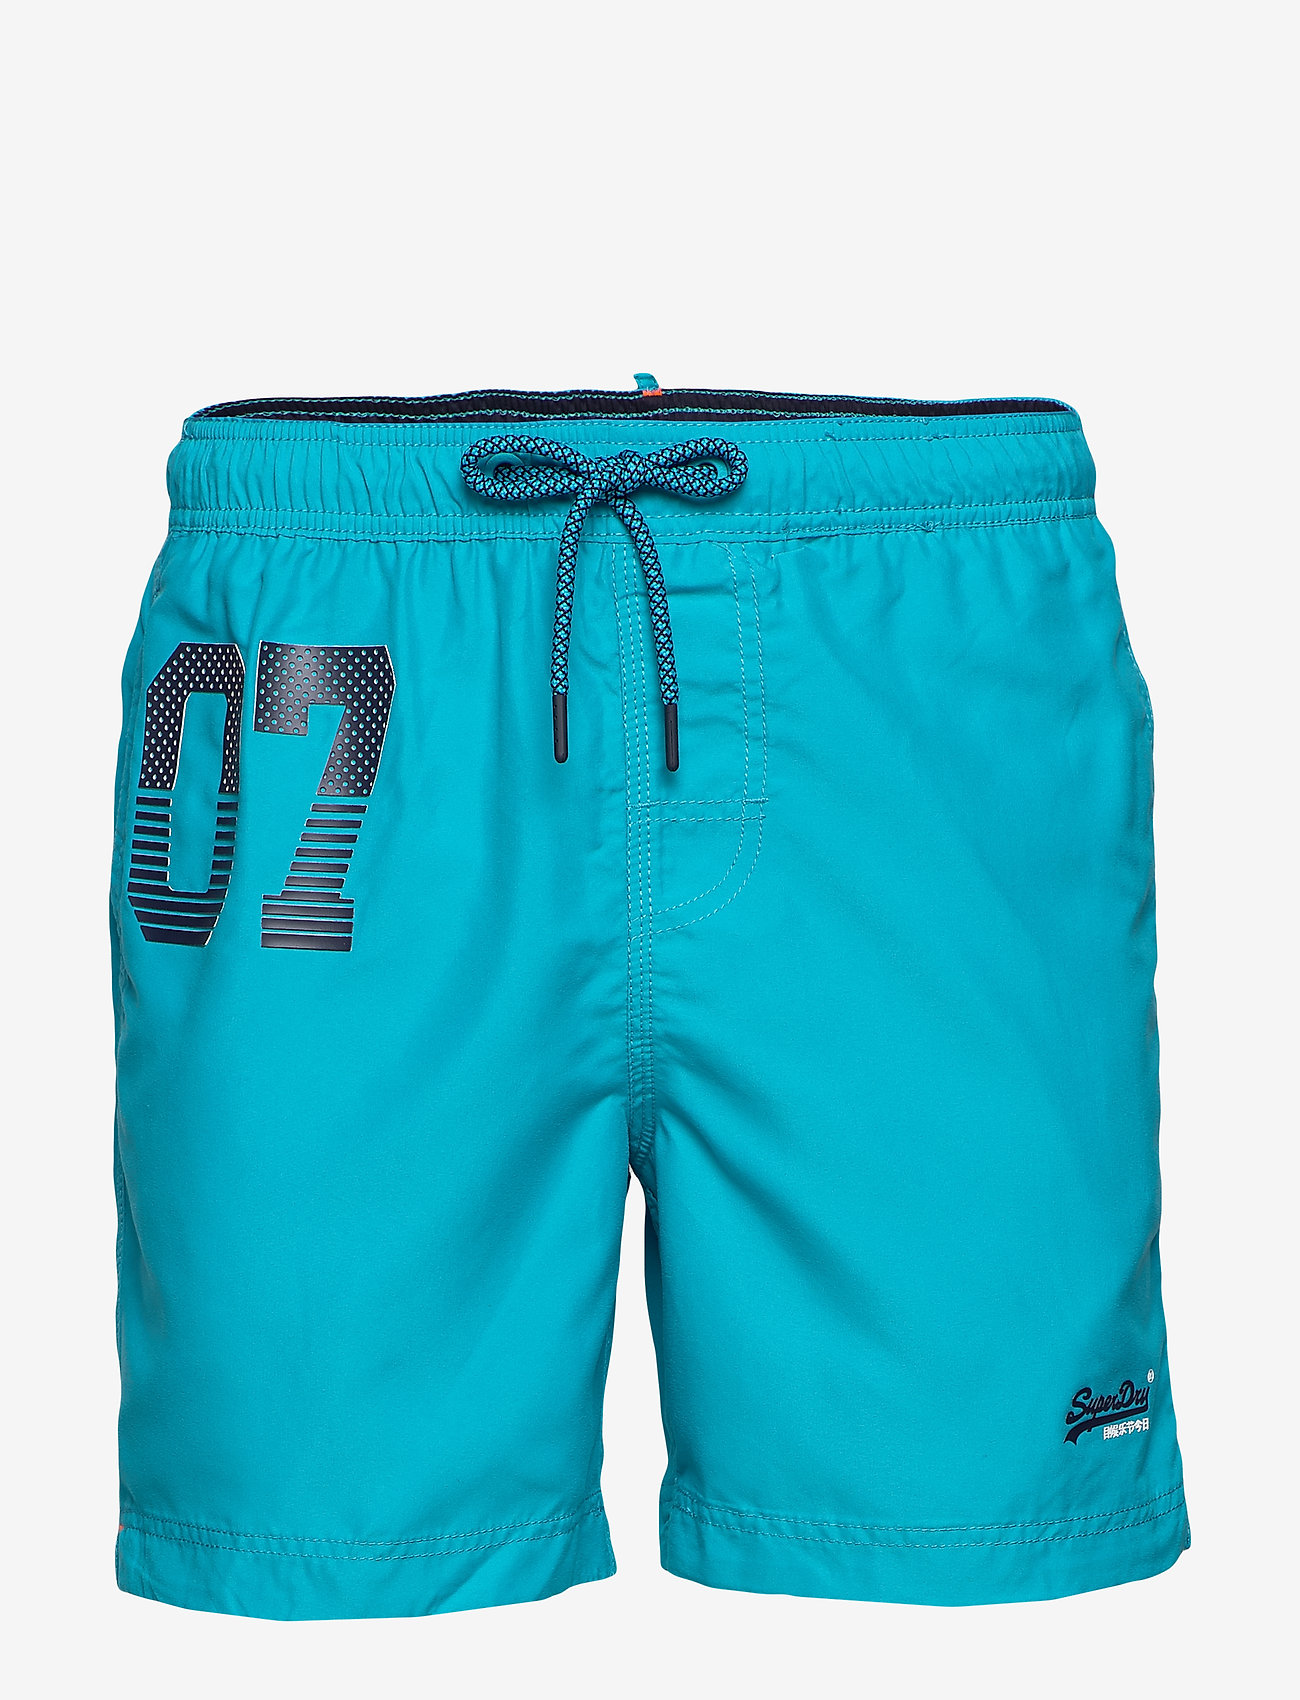 Superdry Mens Waterpolo Aqua Swim Shorts Turquoise in Size Small